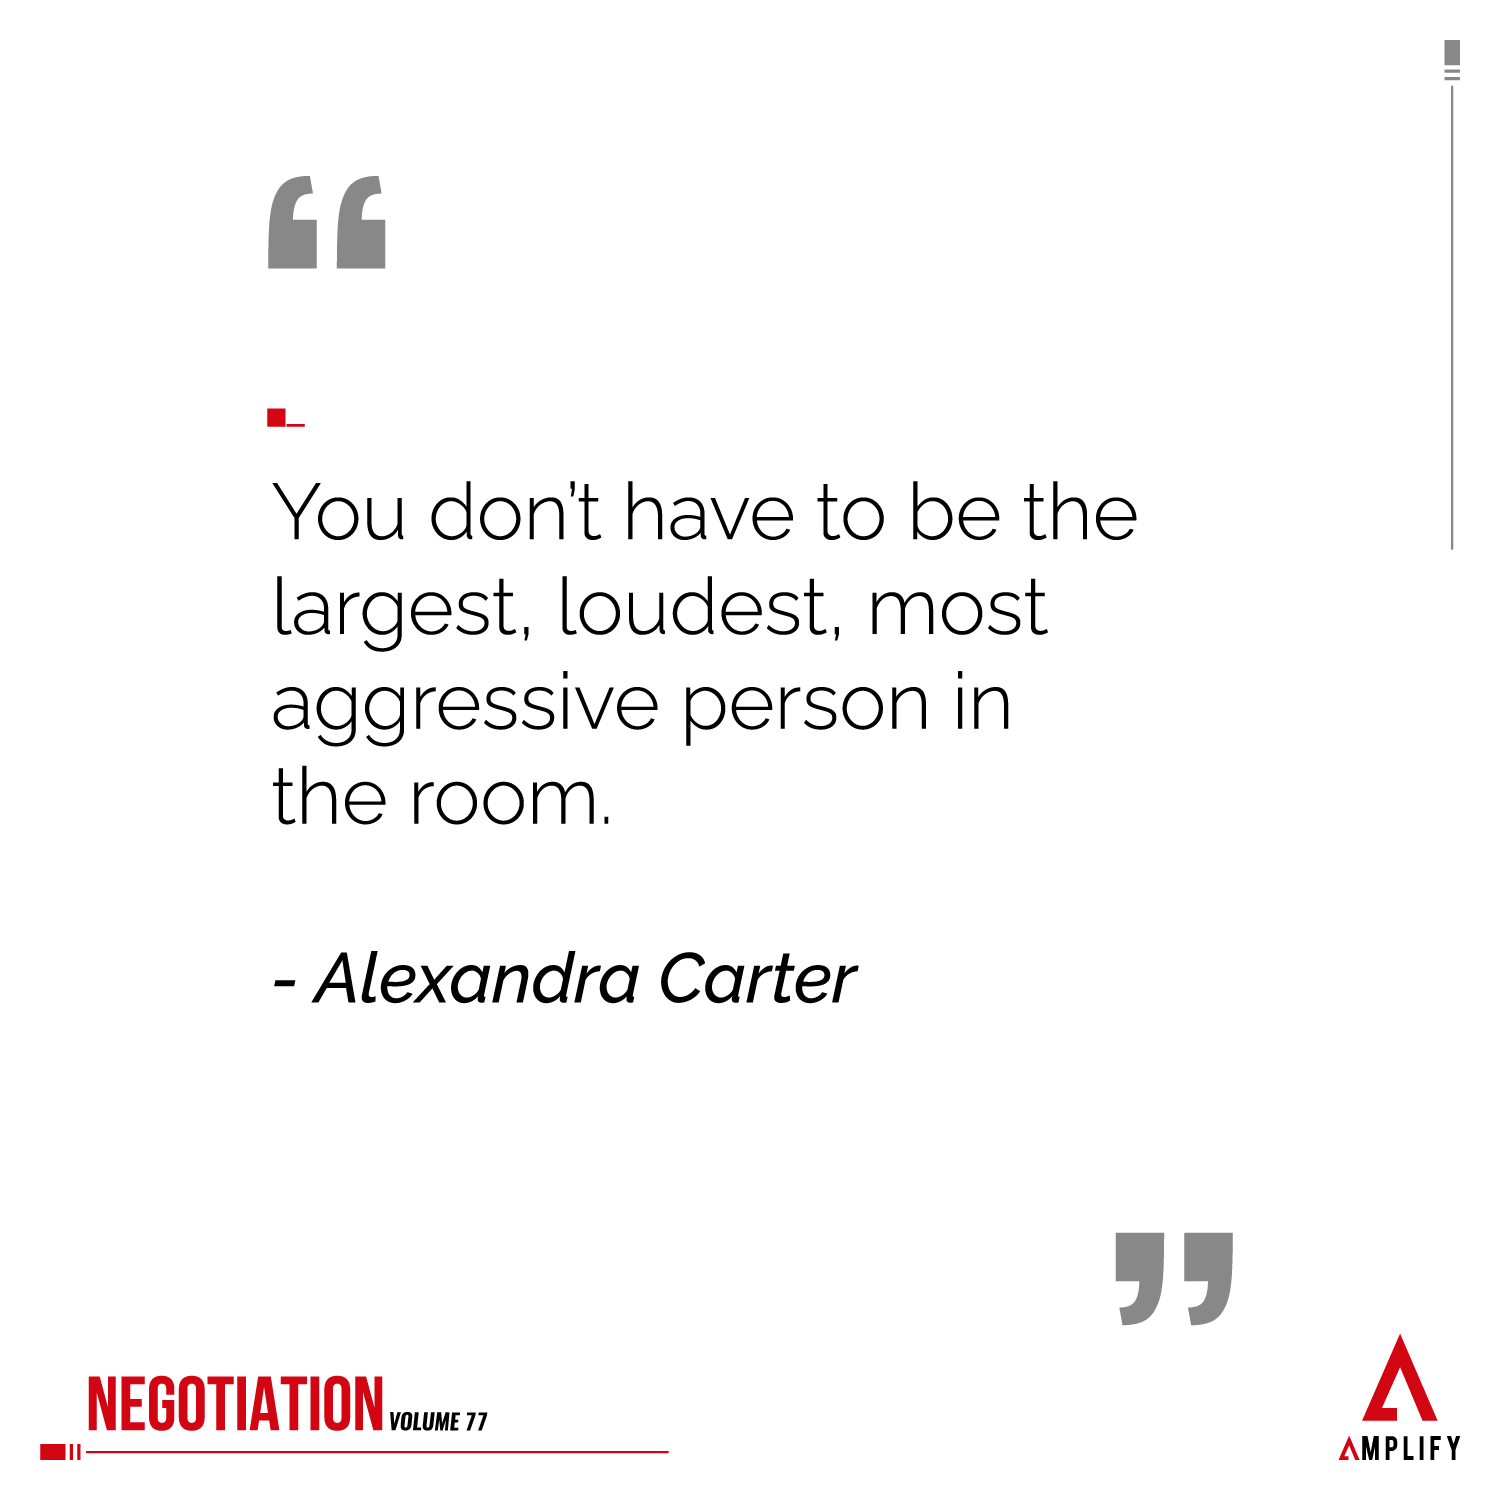 """decorative image with the quote """"You don't have to be the largest, loudest, most aggressive person in the room."""" by Alexandra Carter"""